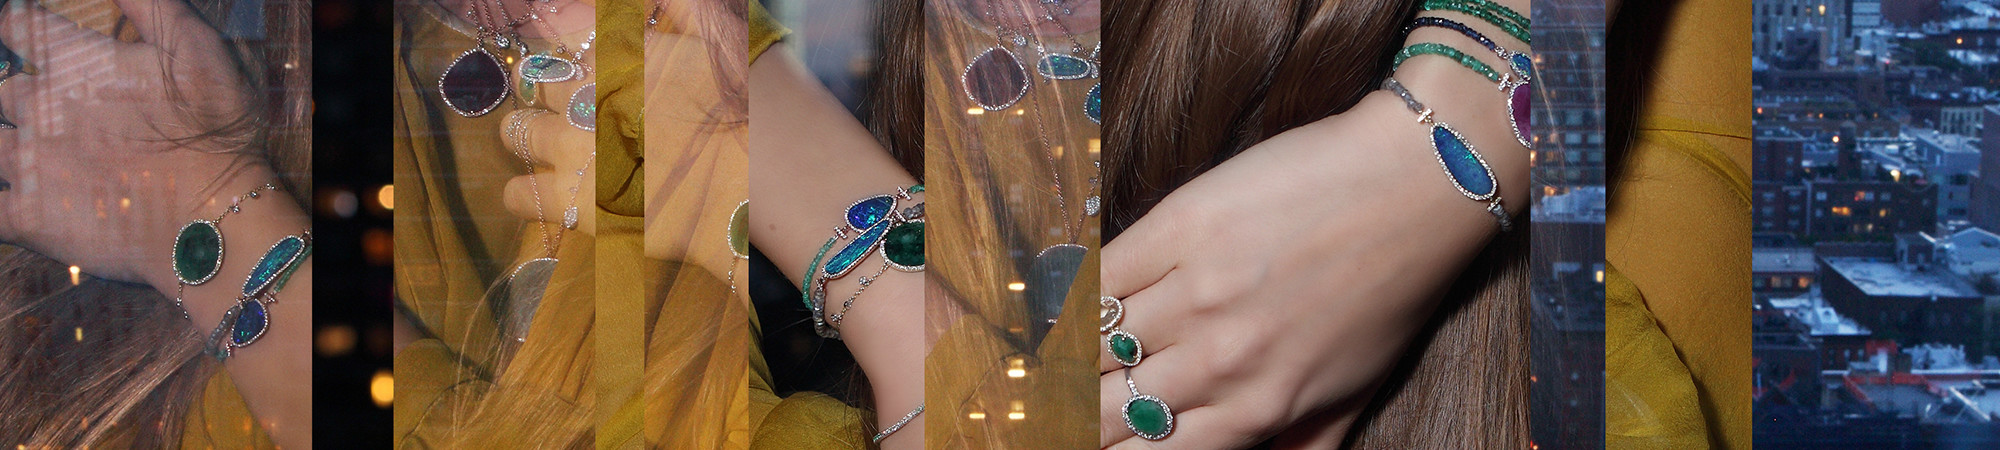 Visit Bennion Jewelers for a fine selection of designer jewelry.